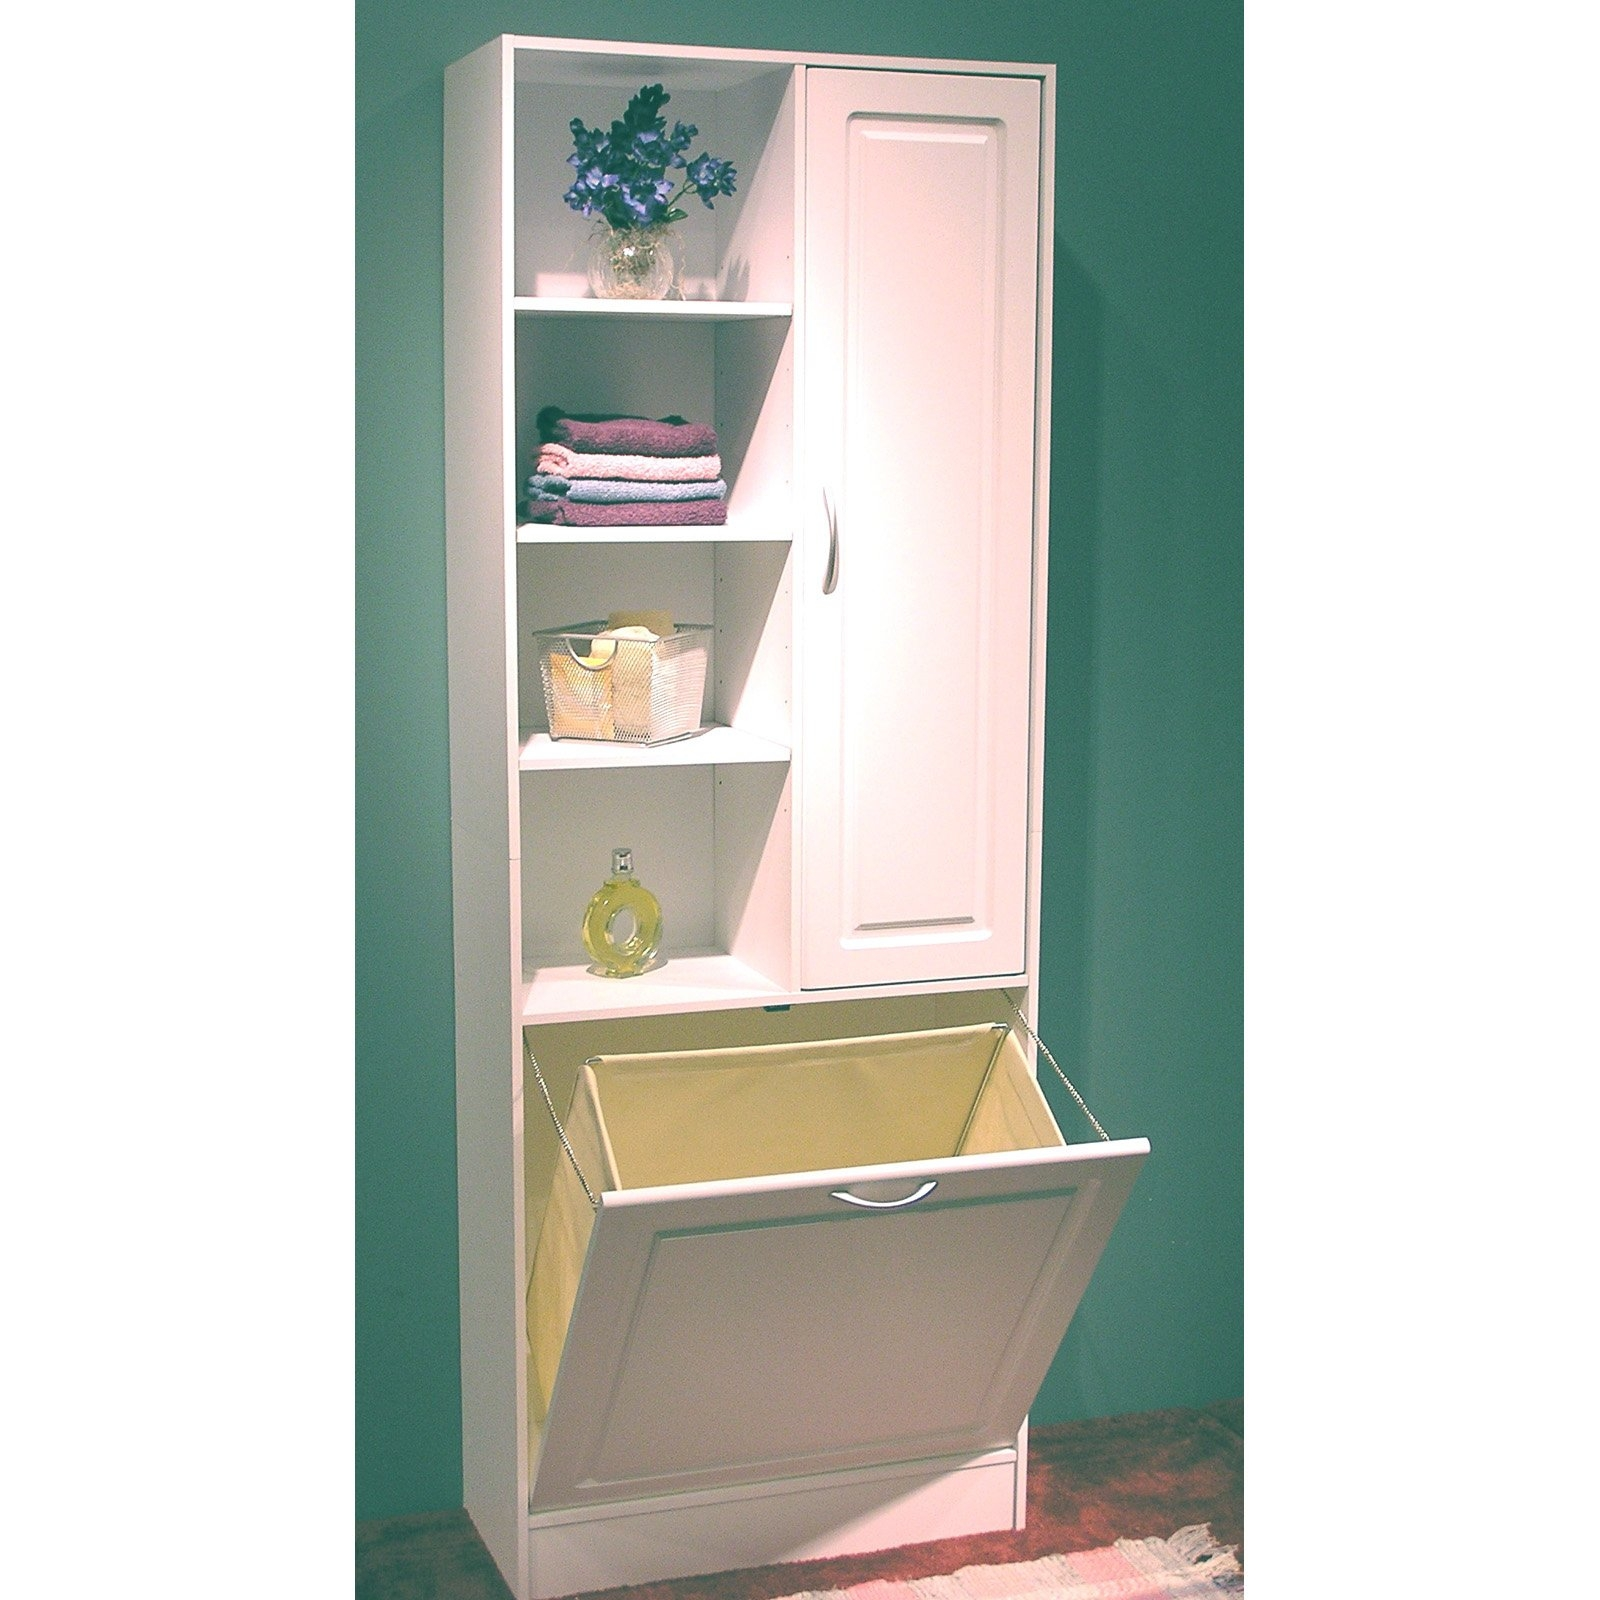 Permalink to Tall Bathroom Cabinet With Laundry Basket